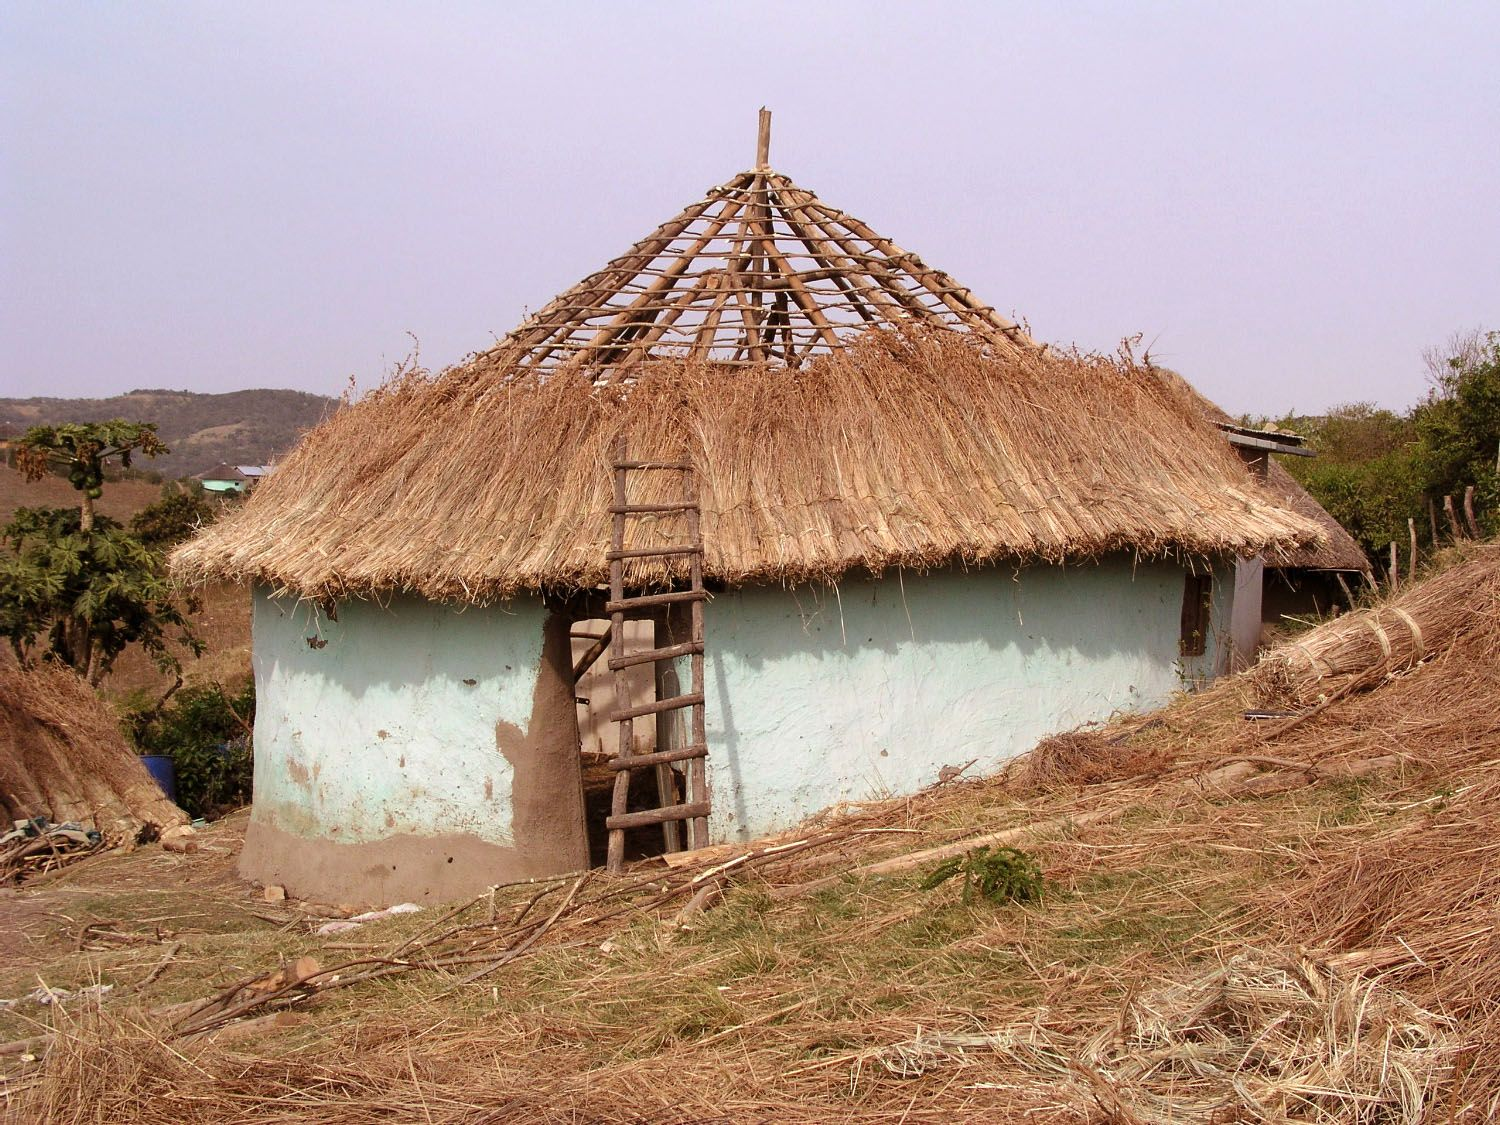 South africa rondavel round hut getting its traditional thatch roof note the pigment